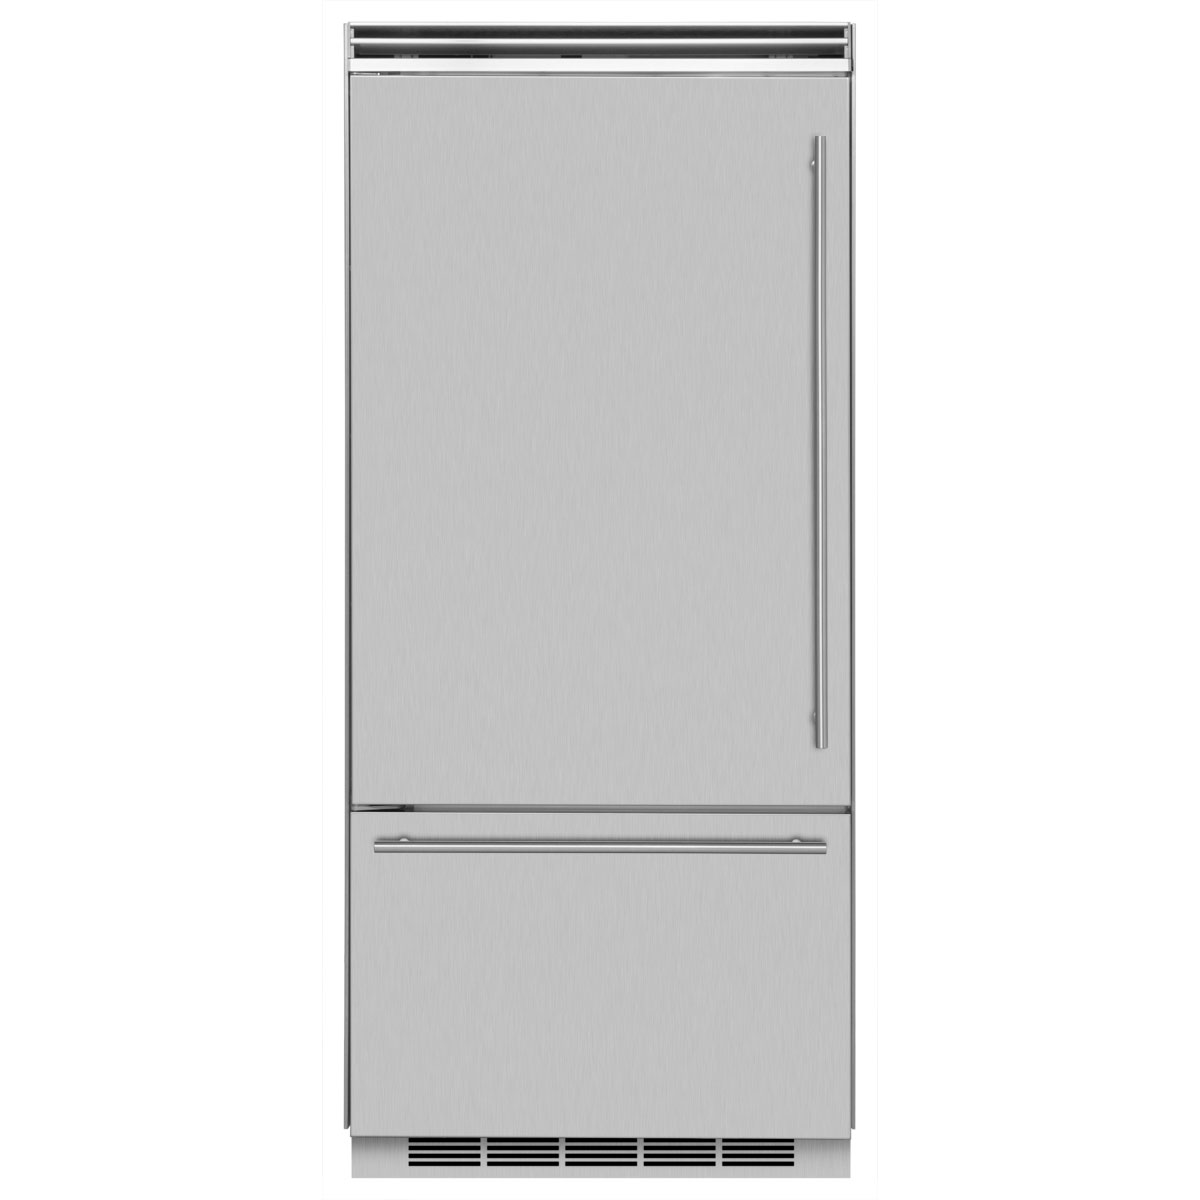 "Marvel  Marvel Professional Built-In 36"" Bottom Freezer Refrigerator- Solid Stainless Steel Door   Right Hinge, Slim Designer Handle"